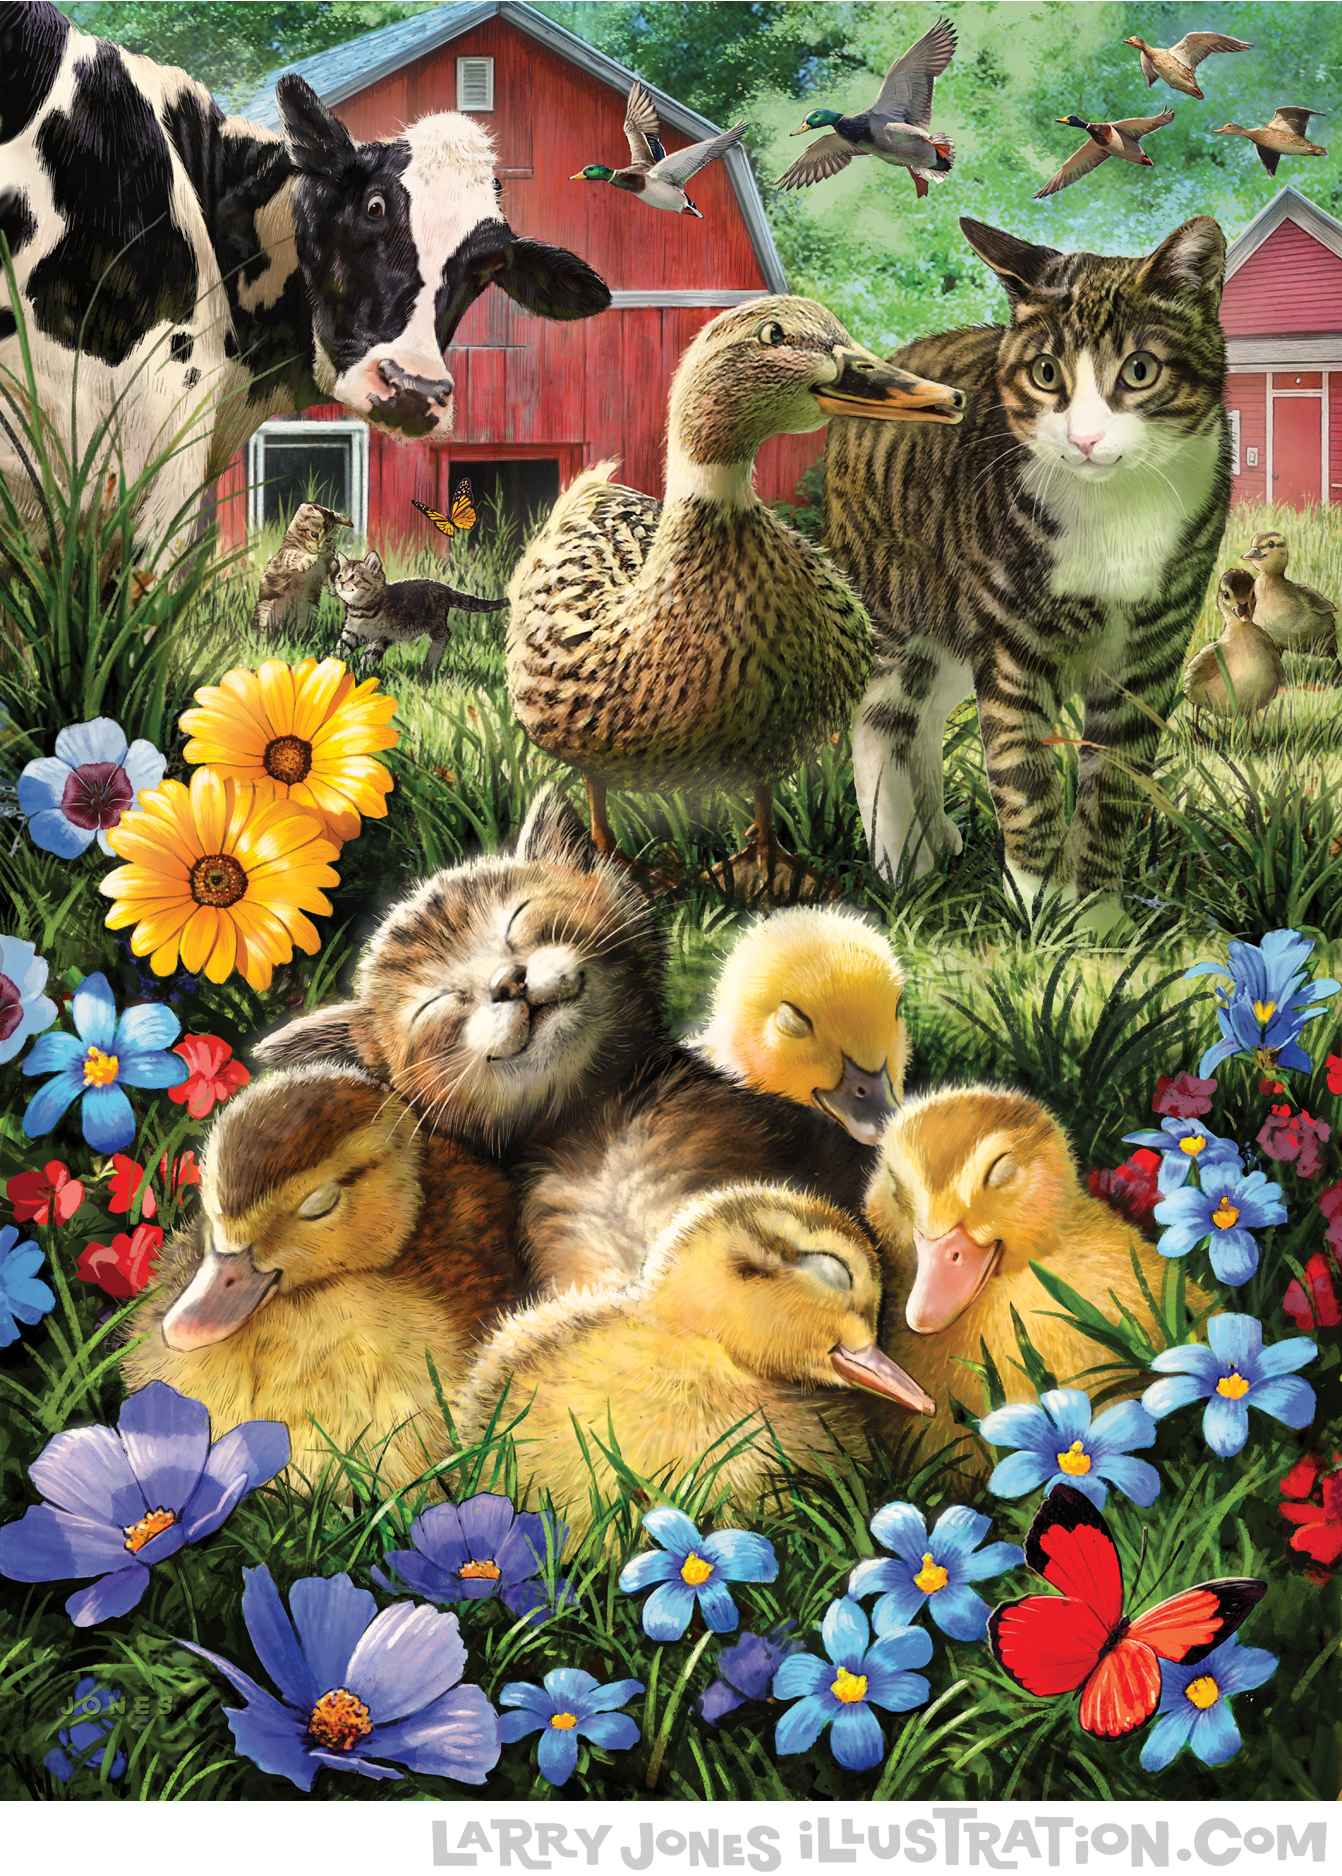 kitten-ducklings-puzzle.jpg